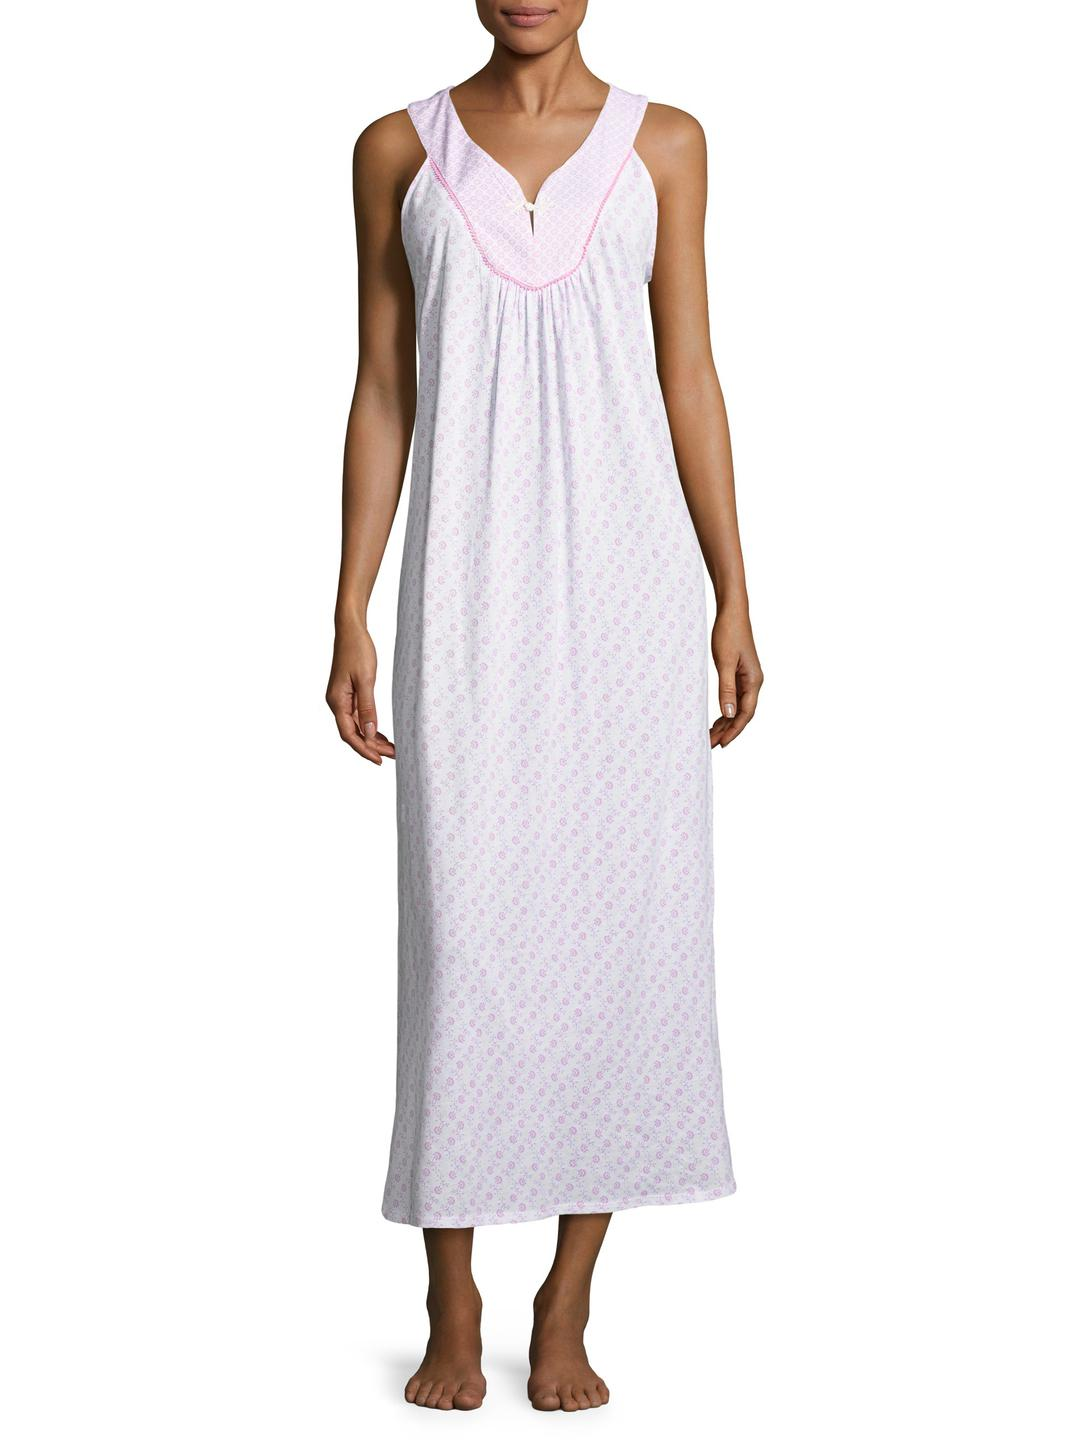 Lyst - Midnight By Carole Hochman Cotton Printed Long Gown in Purple